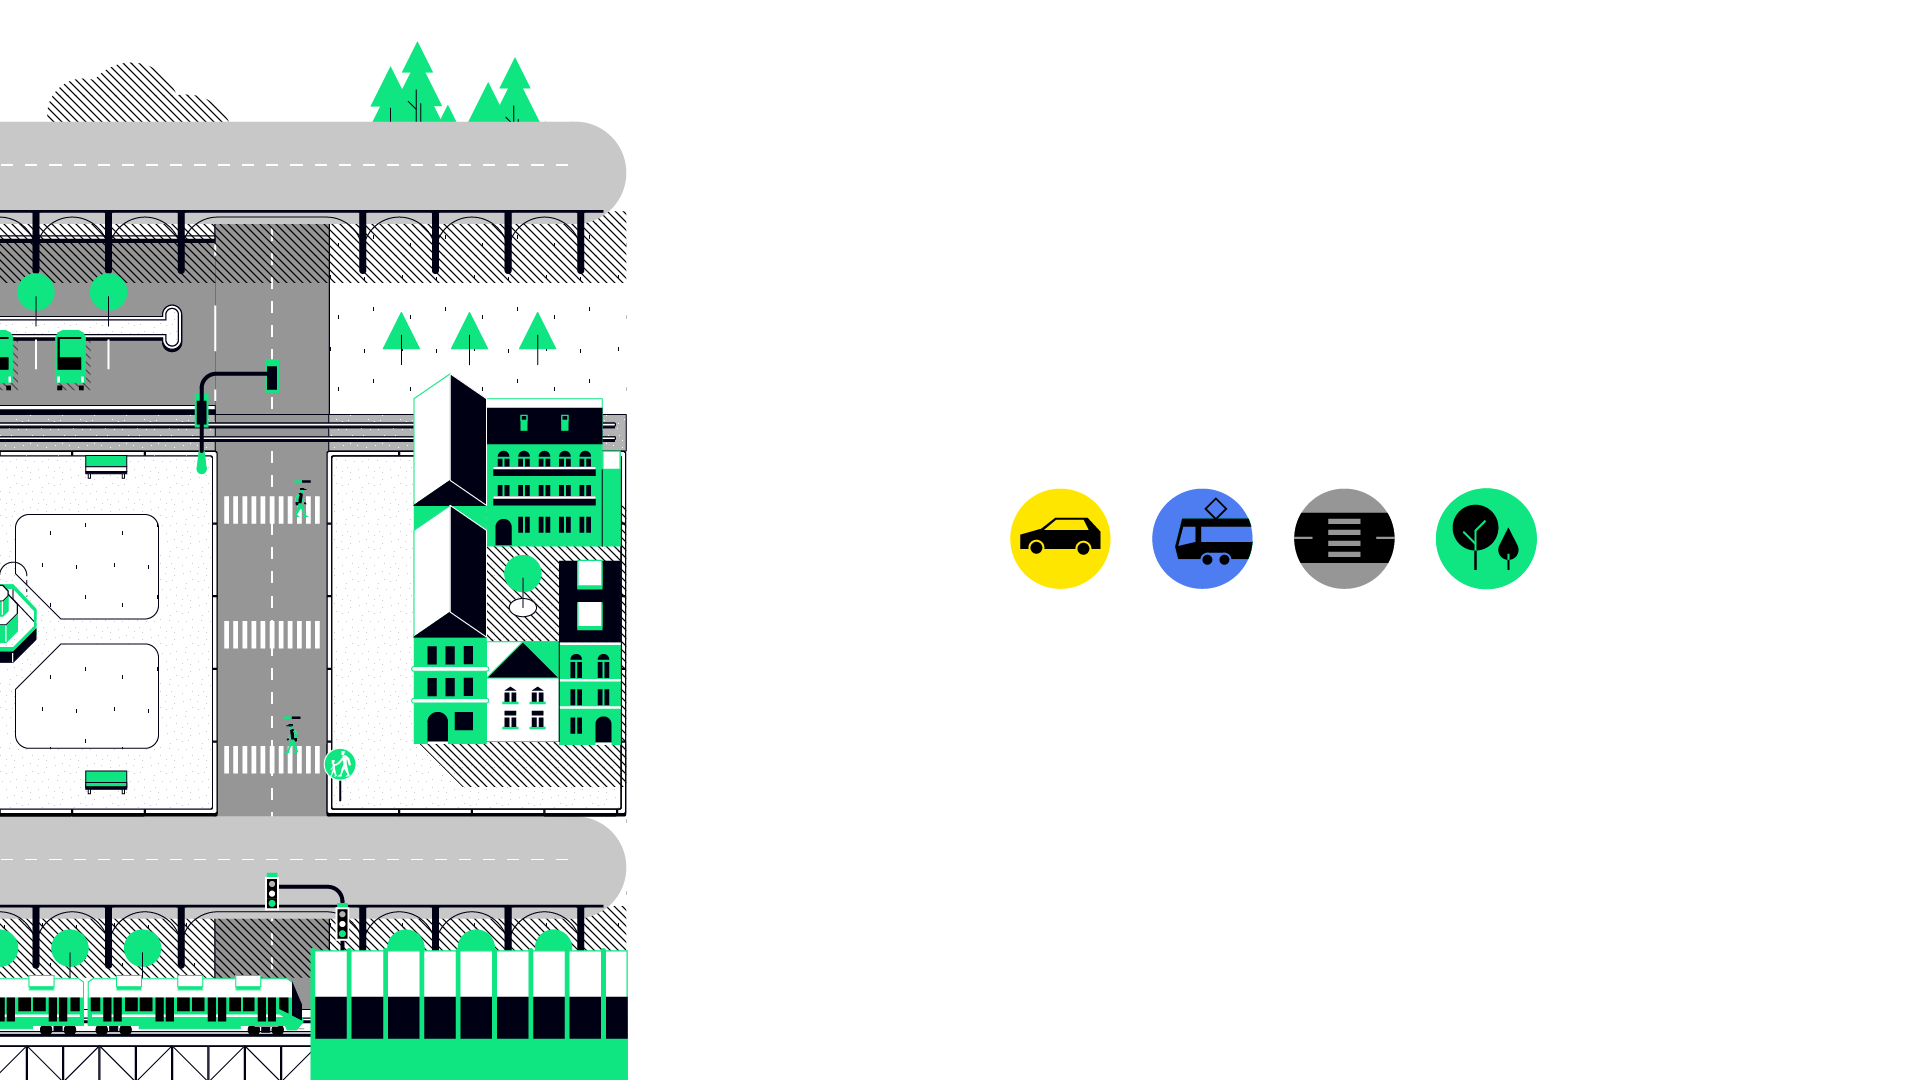 Pictogram Illustration of a city and pictograms of traffic.